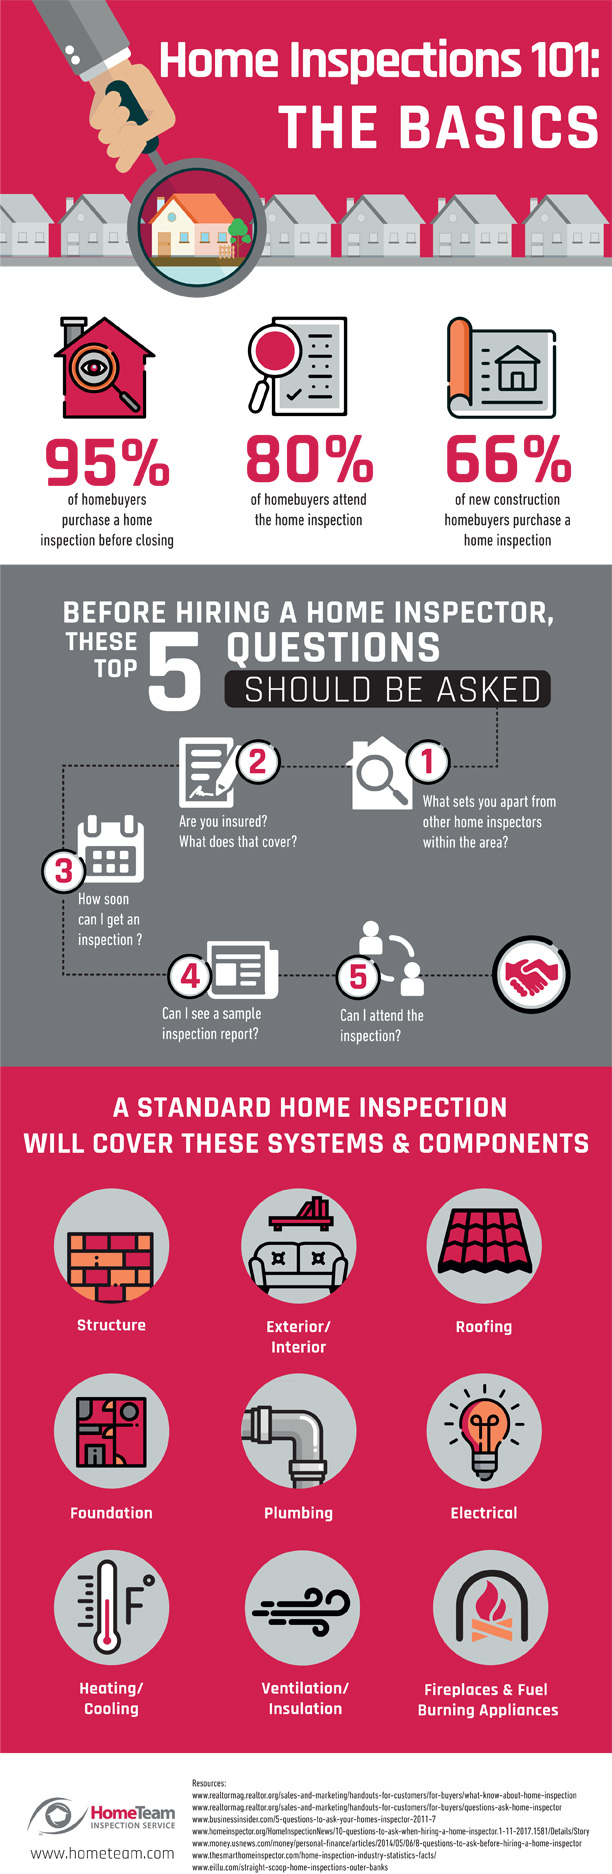 Home Inspections 101: The Basics